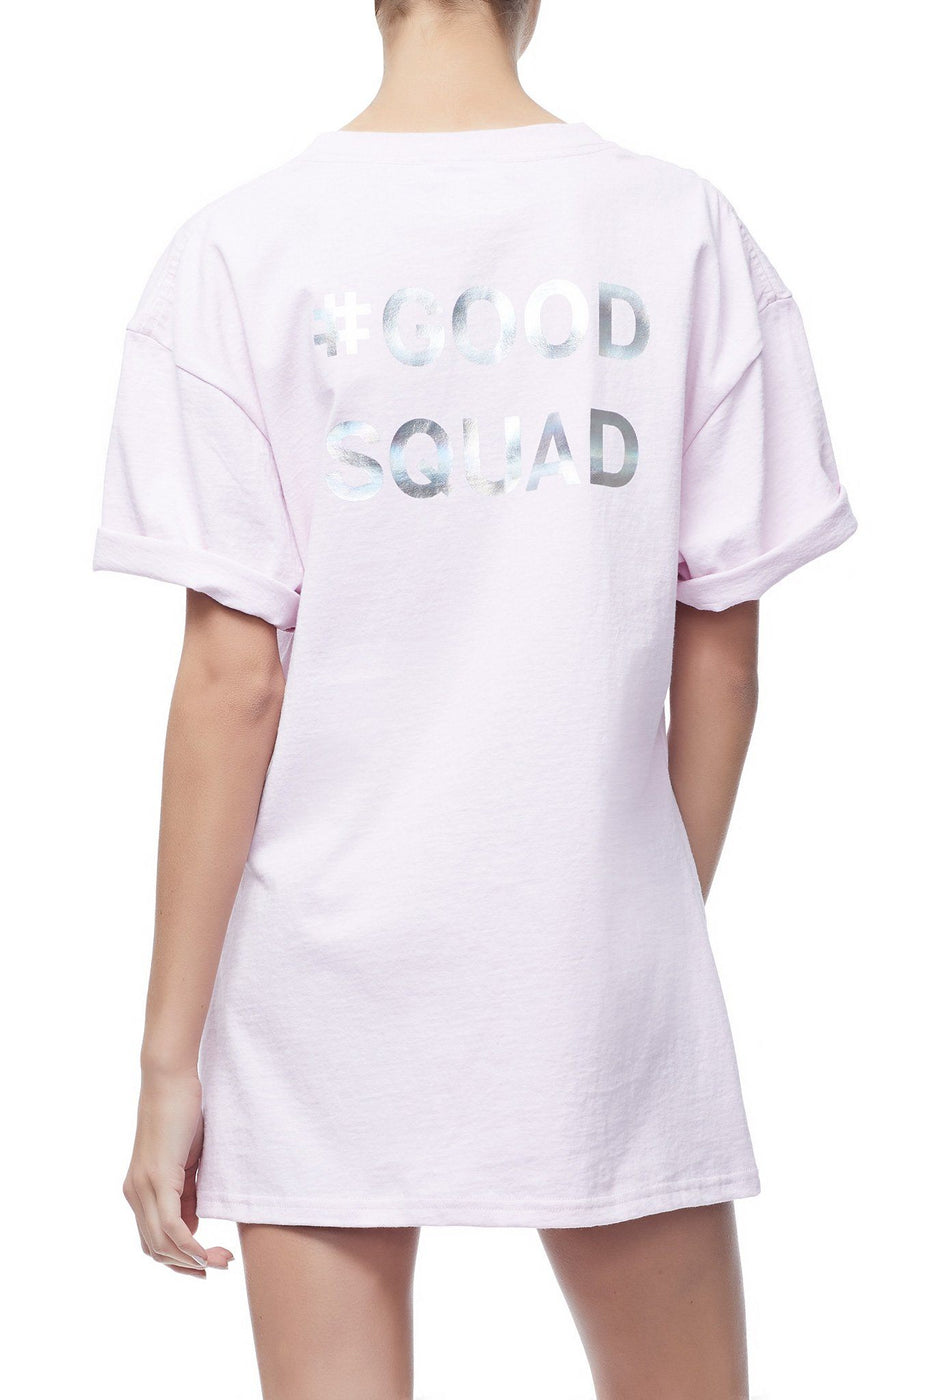 Good American Goodies Iridescent Cinched Waist Tee | Pink001